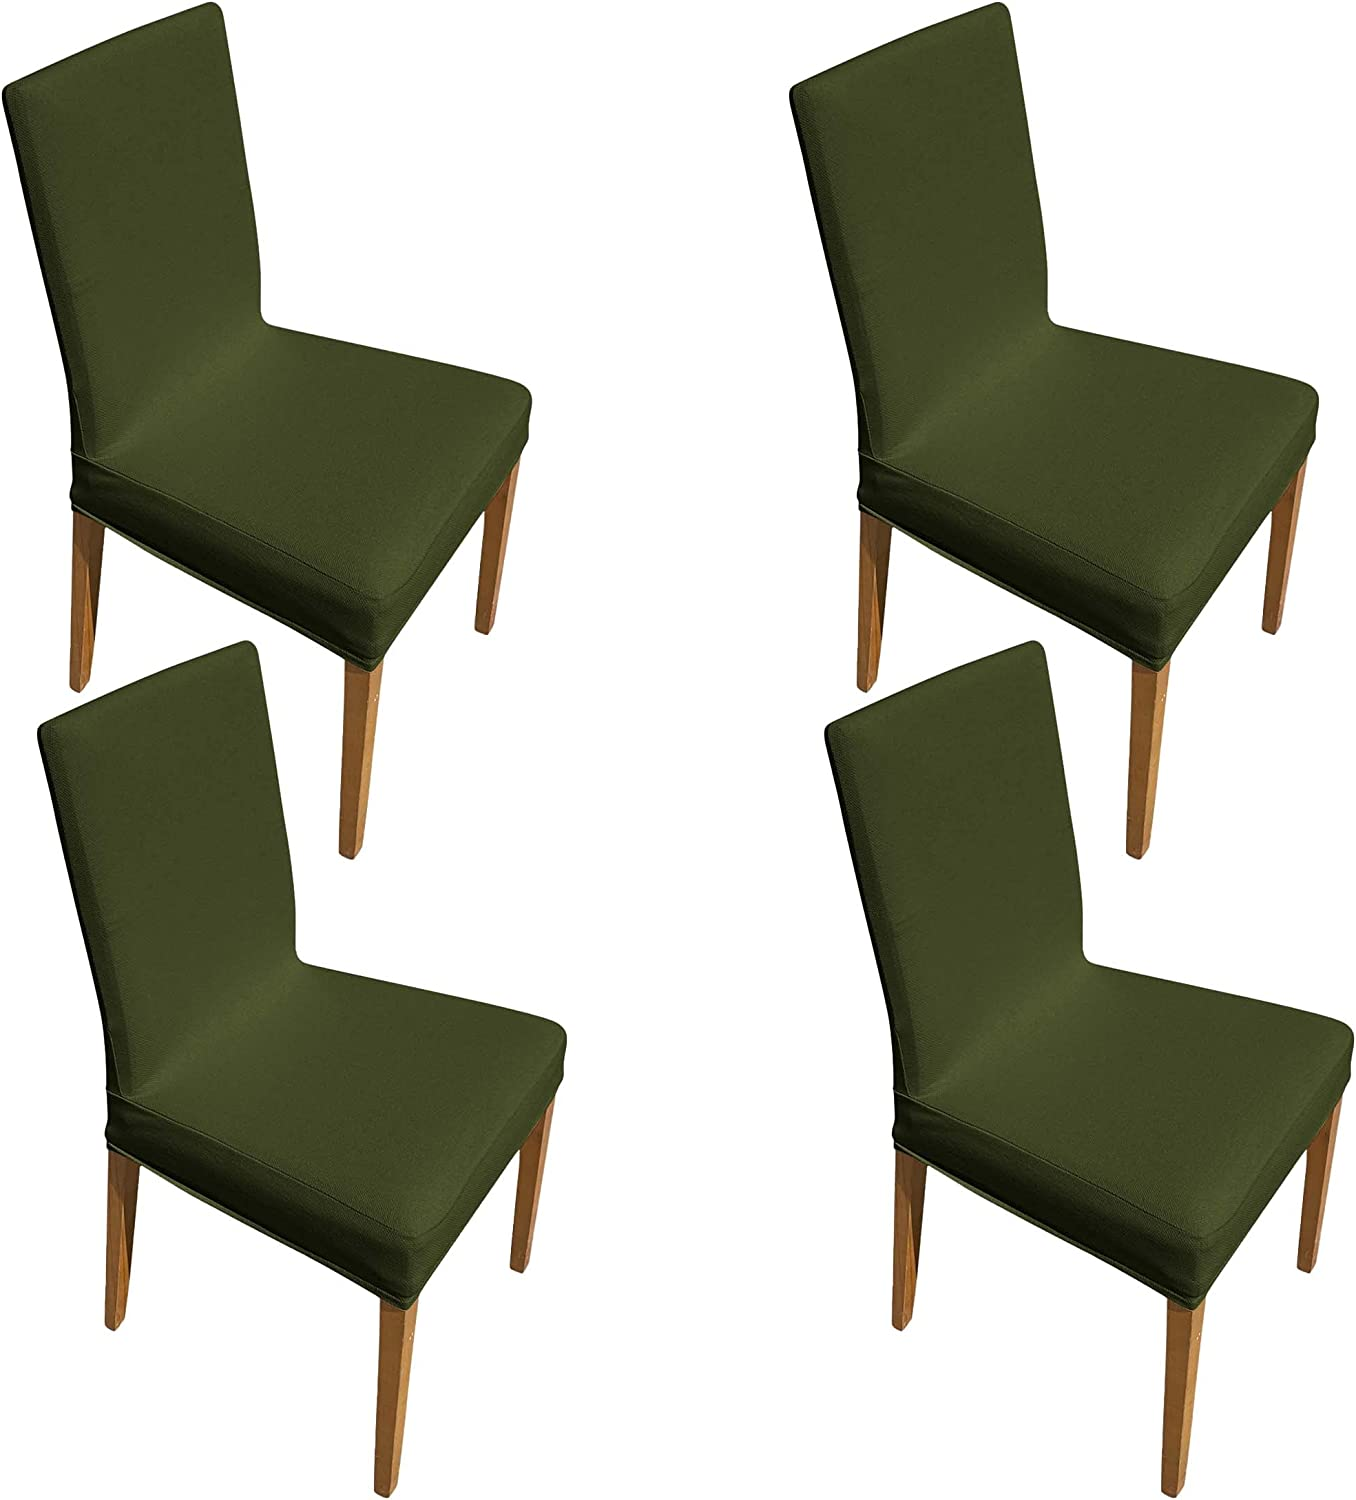 Gulizhome Stretch Dining Chair Covers Sale item Set safety of for 4